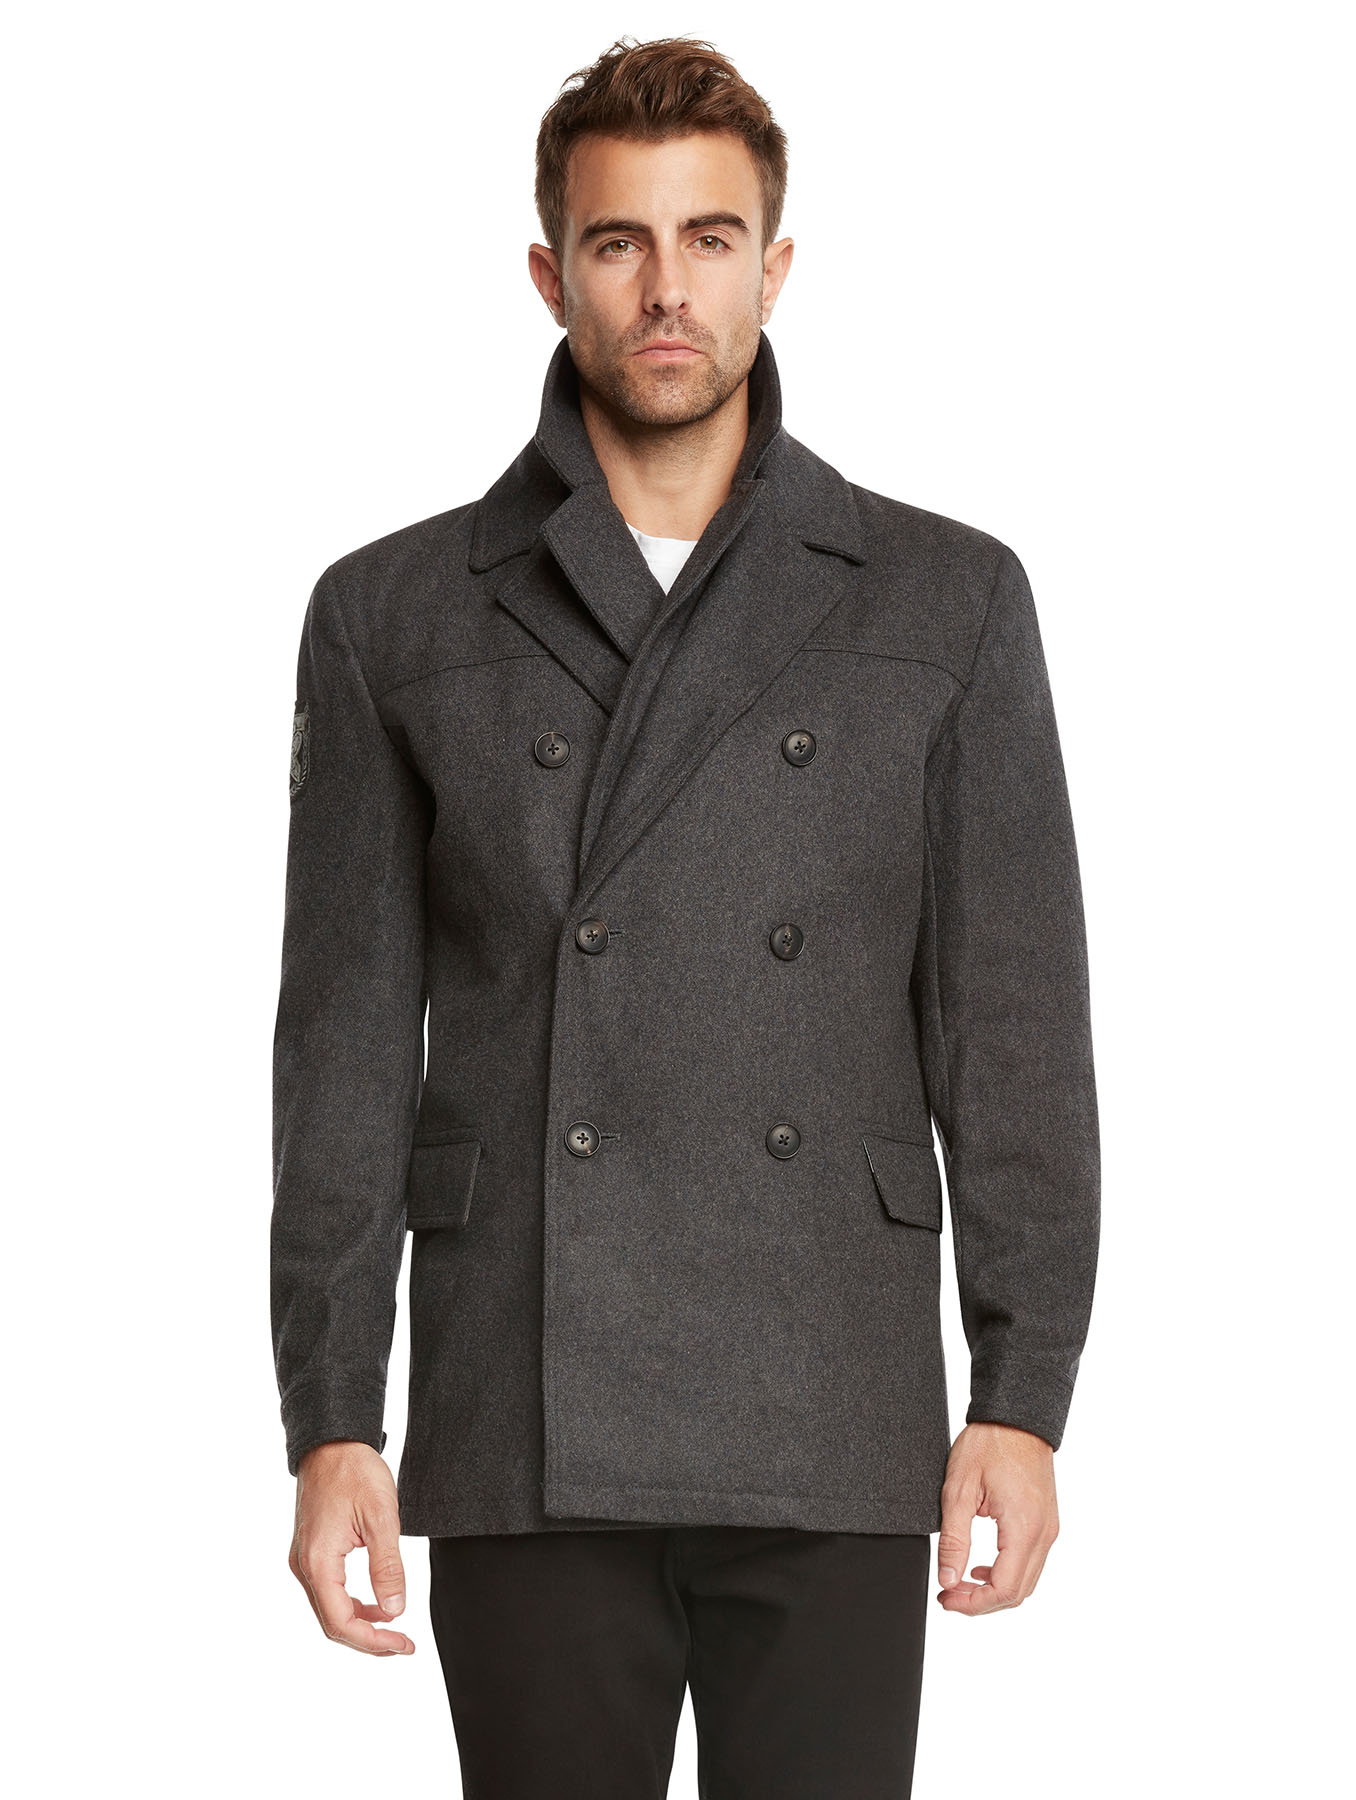 Men's Euro Slim Fit Wool Peacoat Jacket by Jack & Jones | eBay